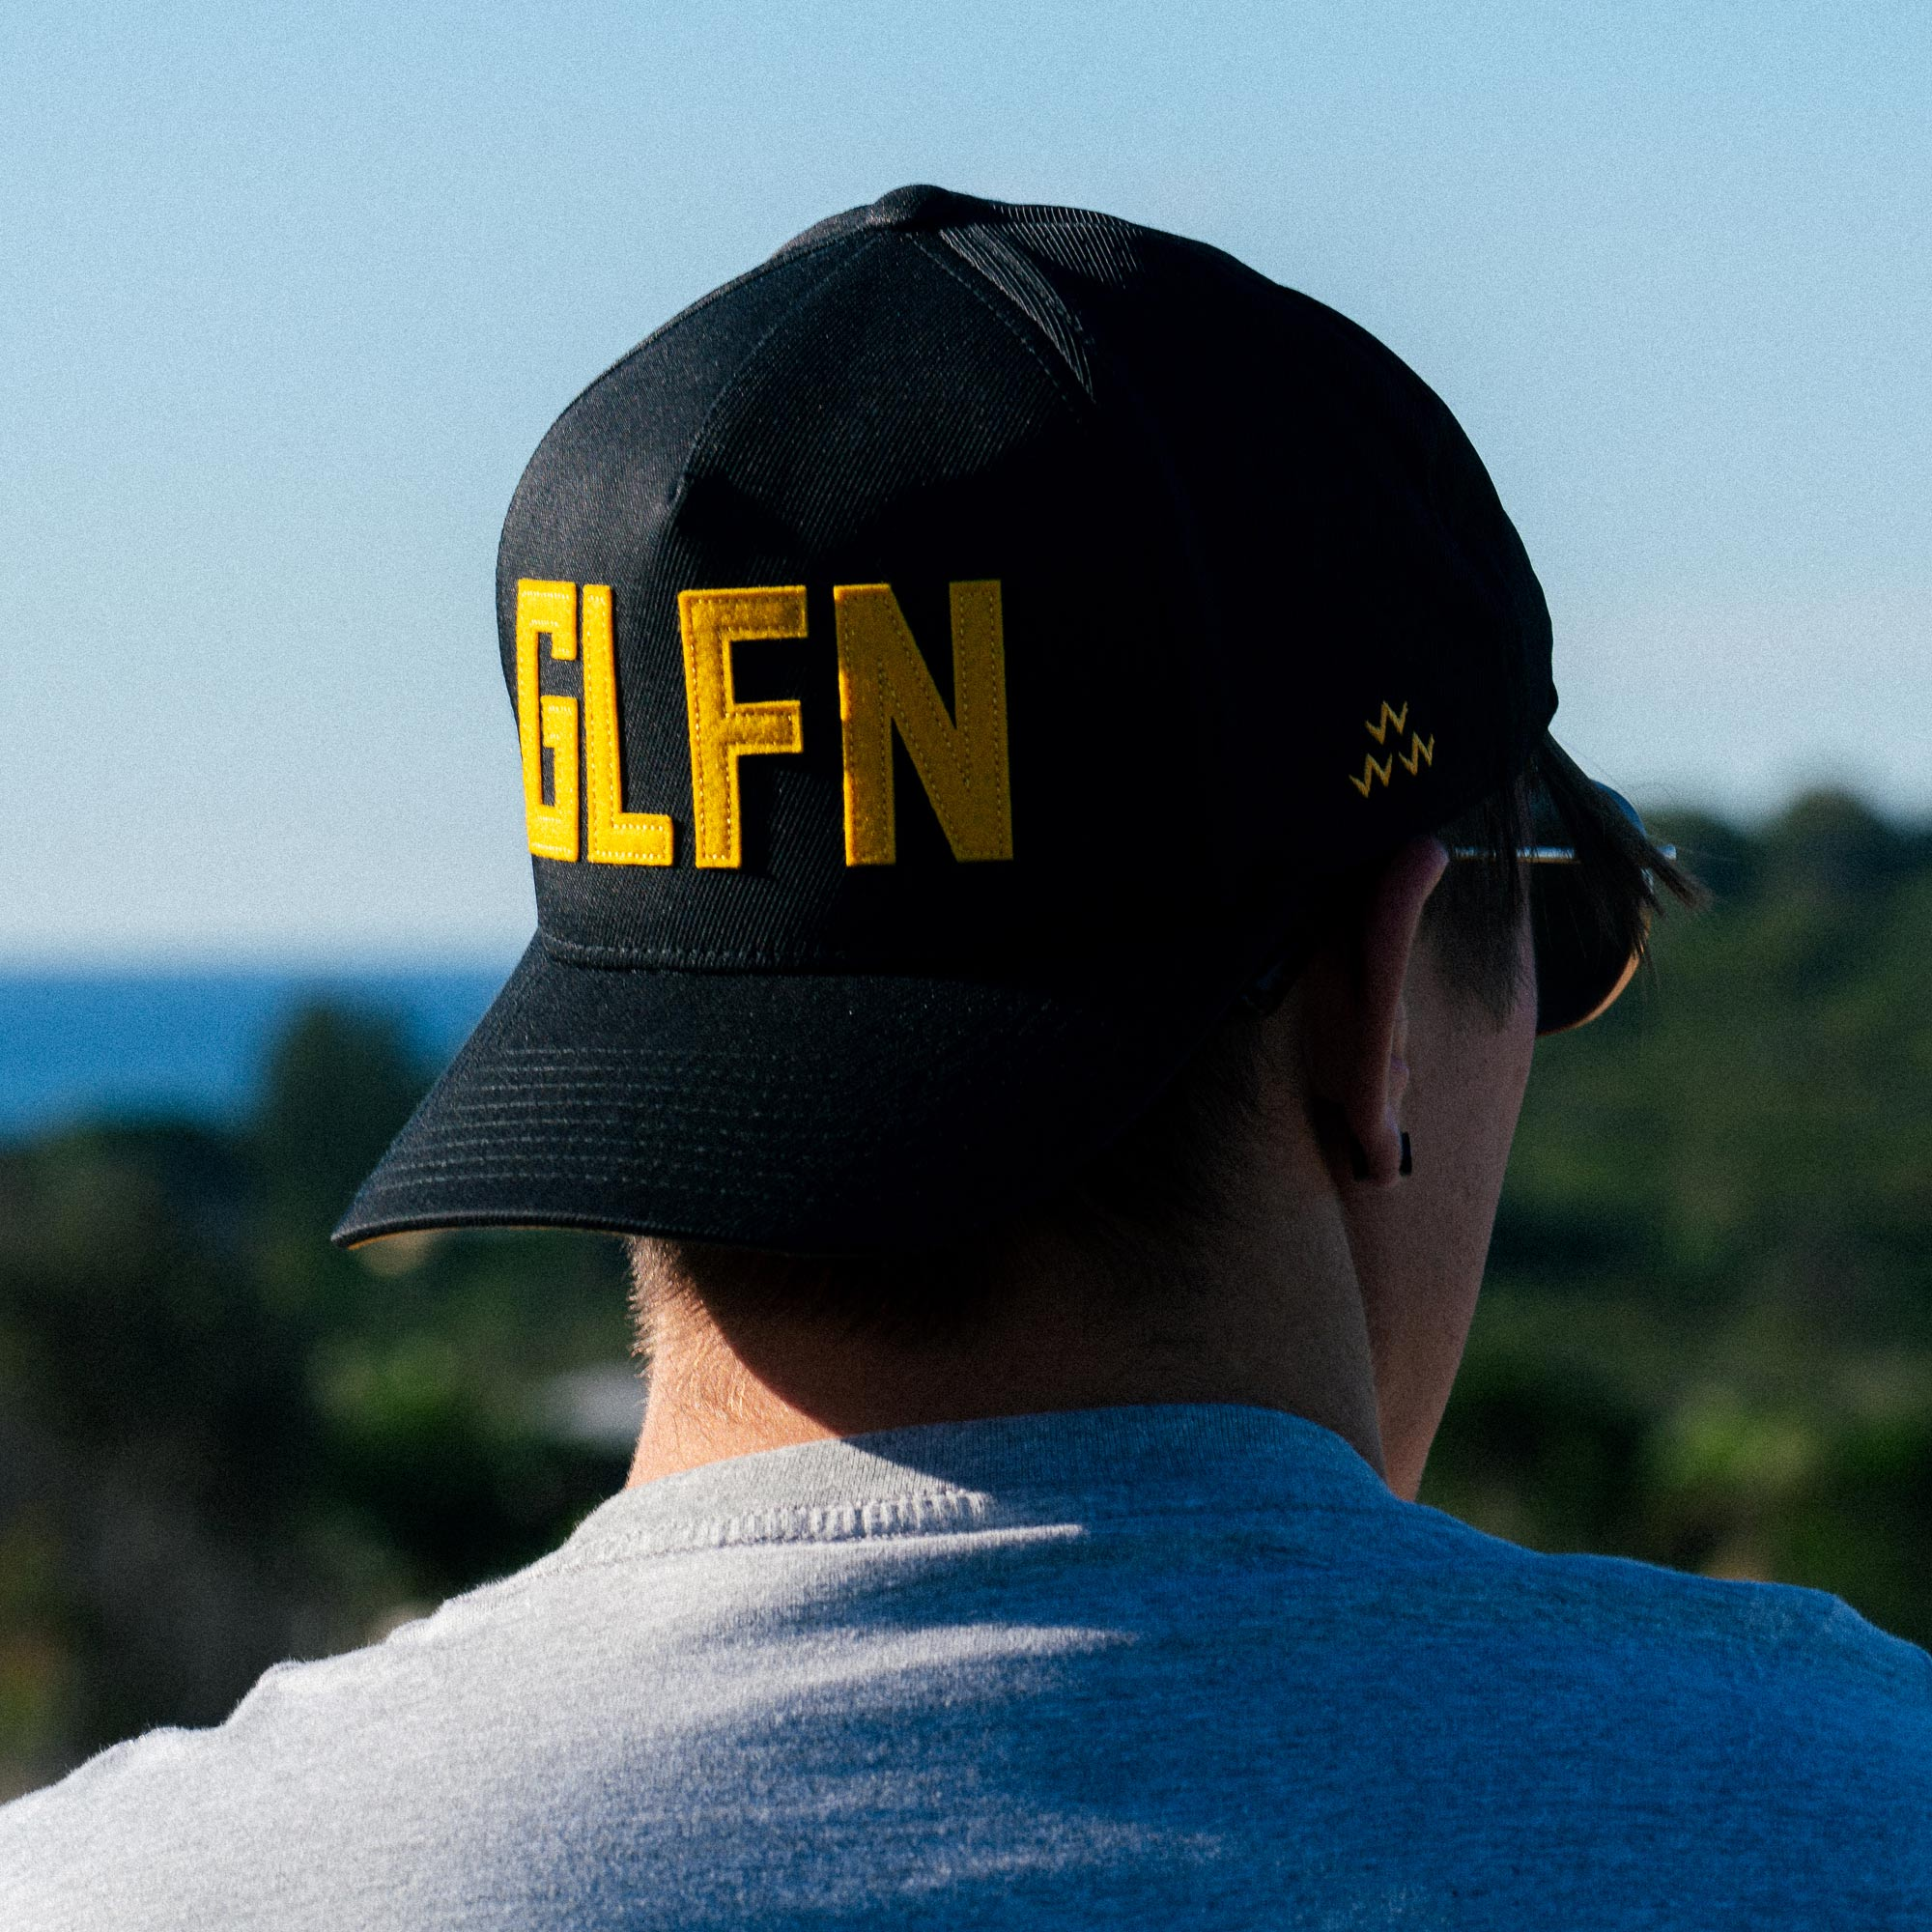 birds-of-condor-black-yellow-golf-glfn-golfing-snapback-a-frame-hat-front